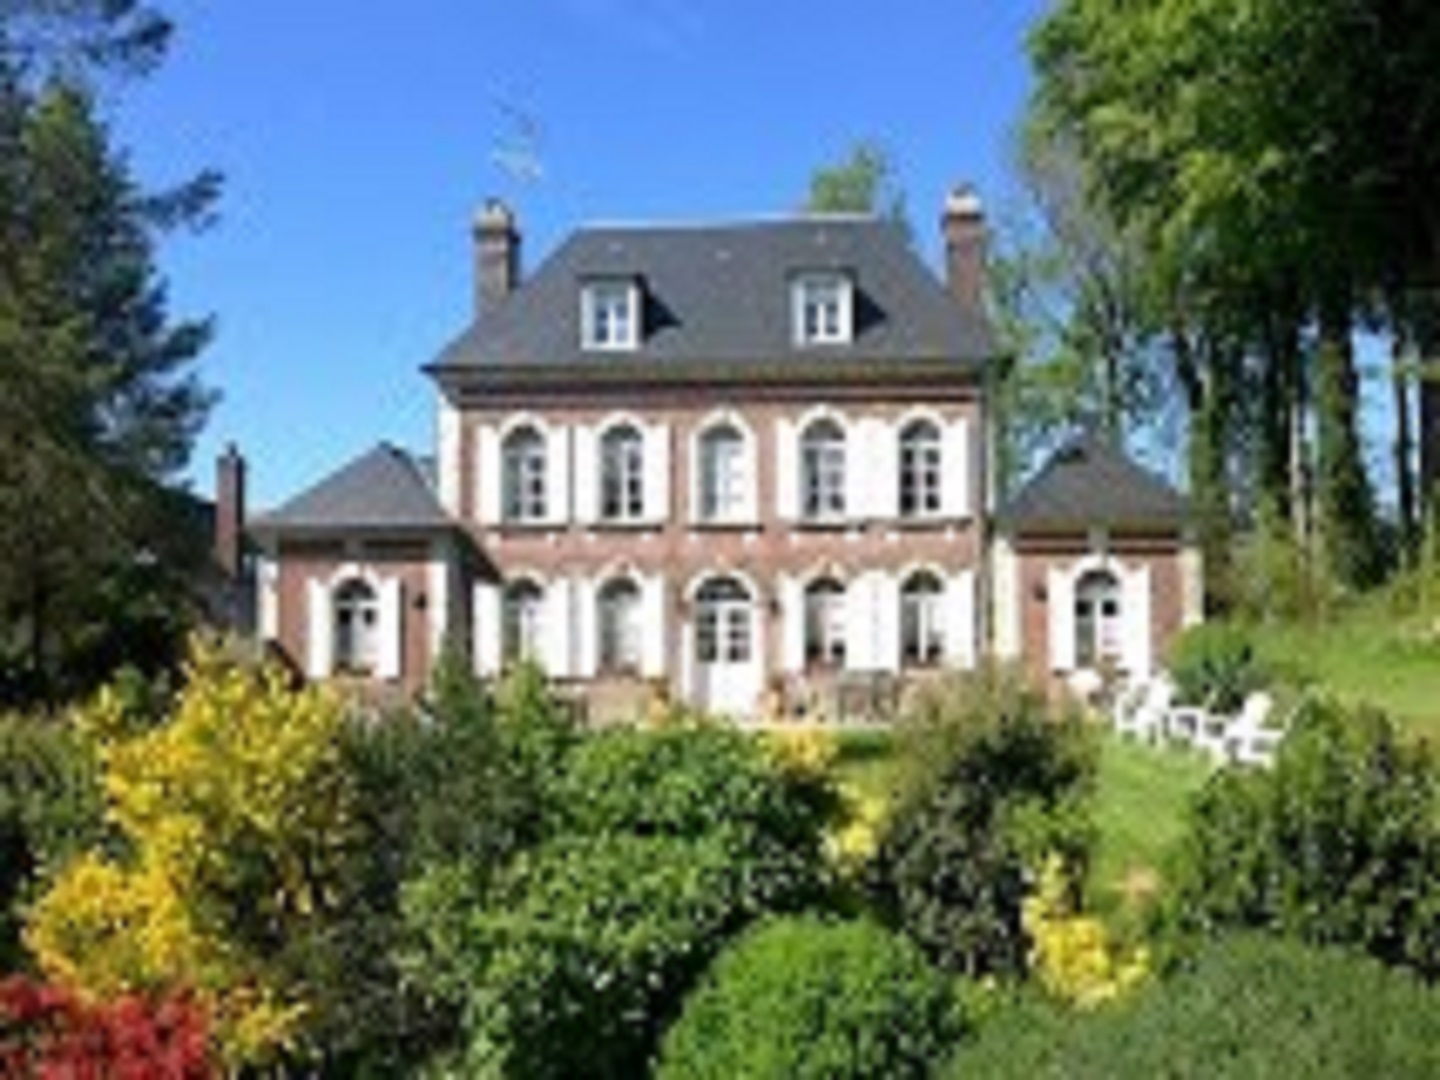 A house with bushes in front of a building at Le domaine de Vaux.